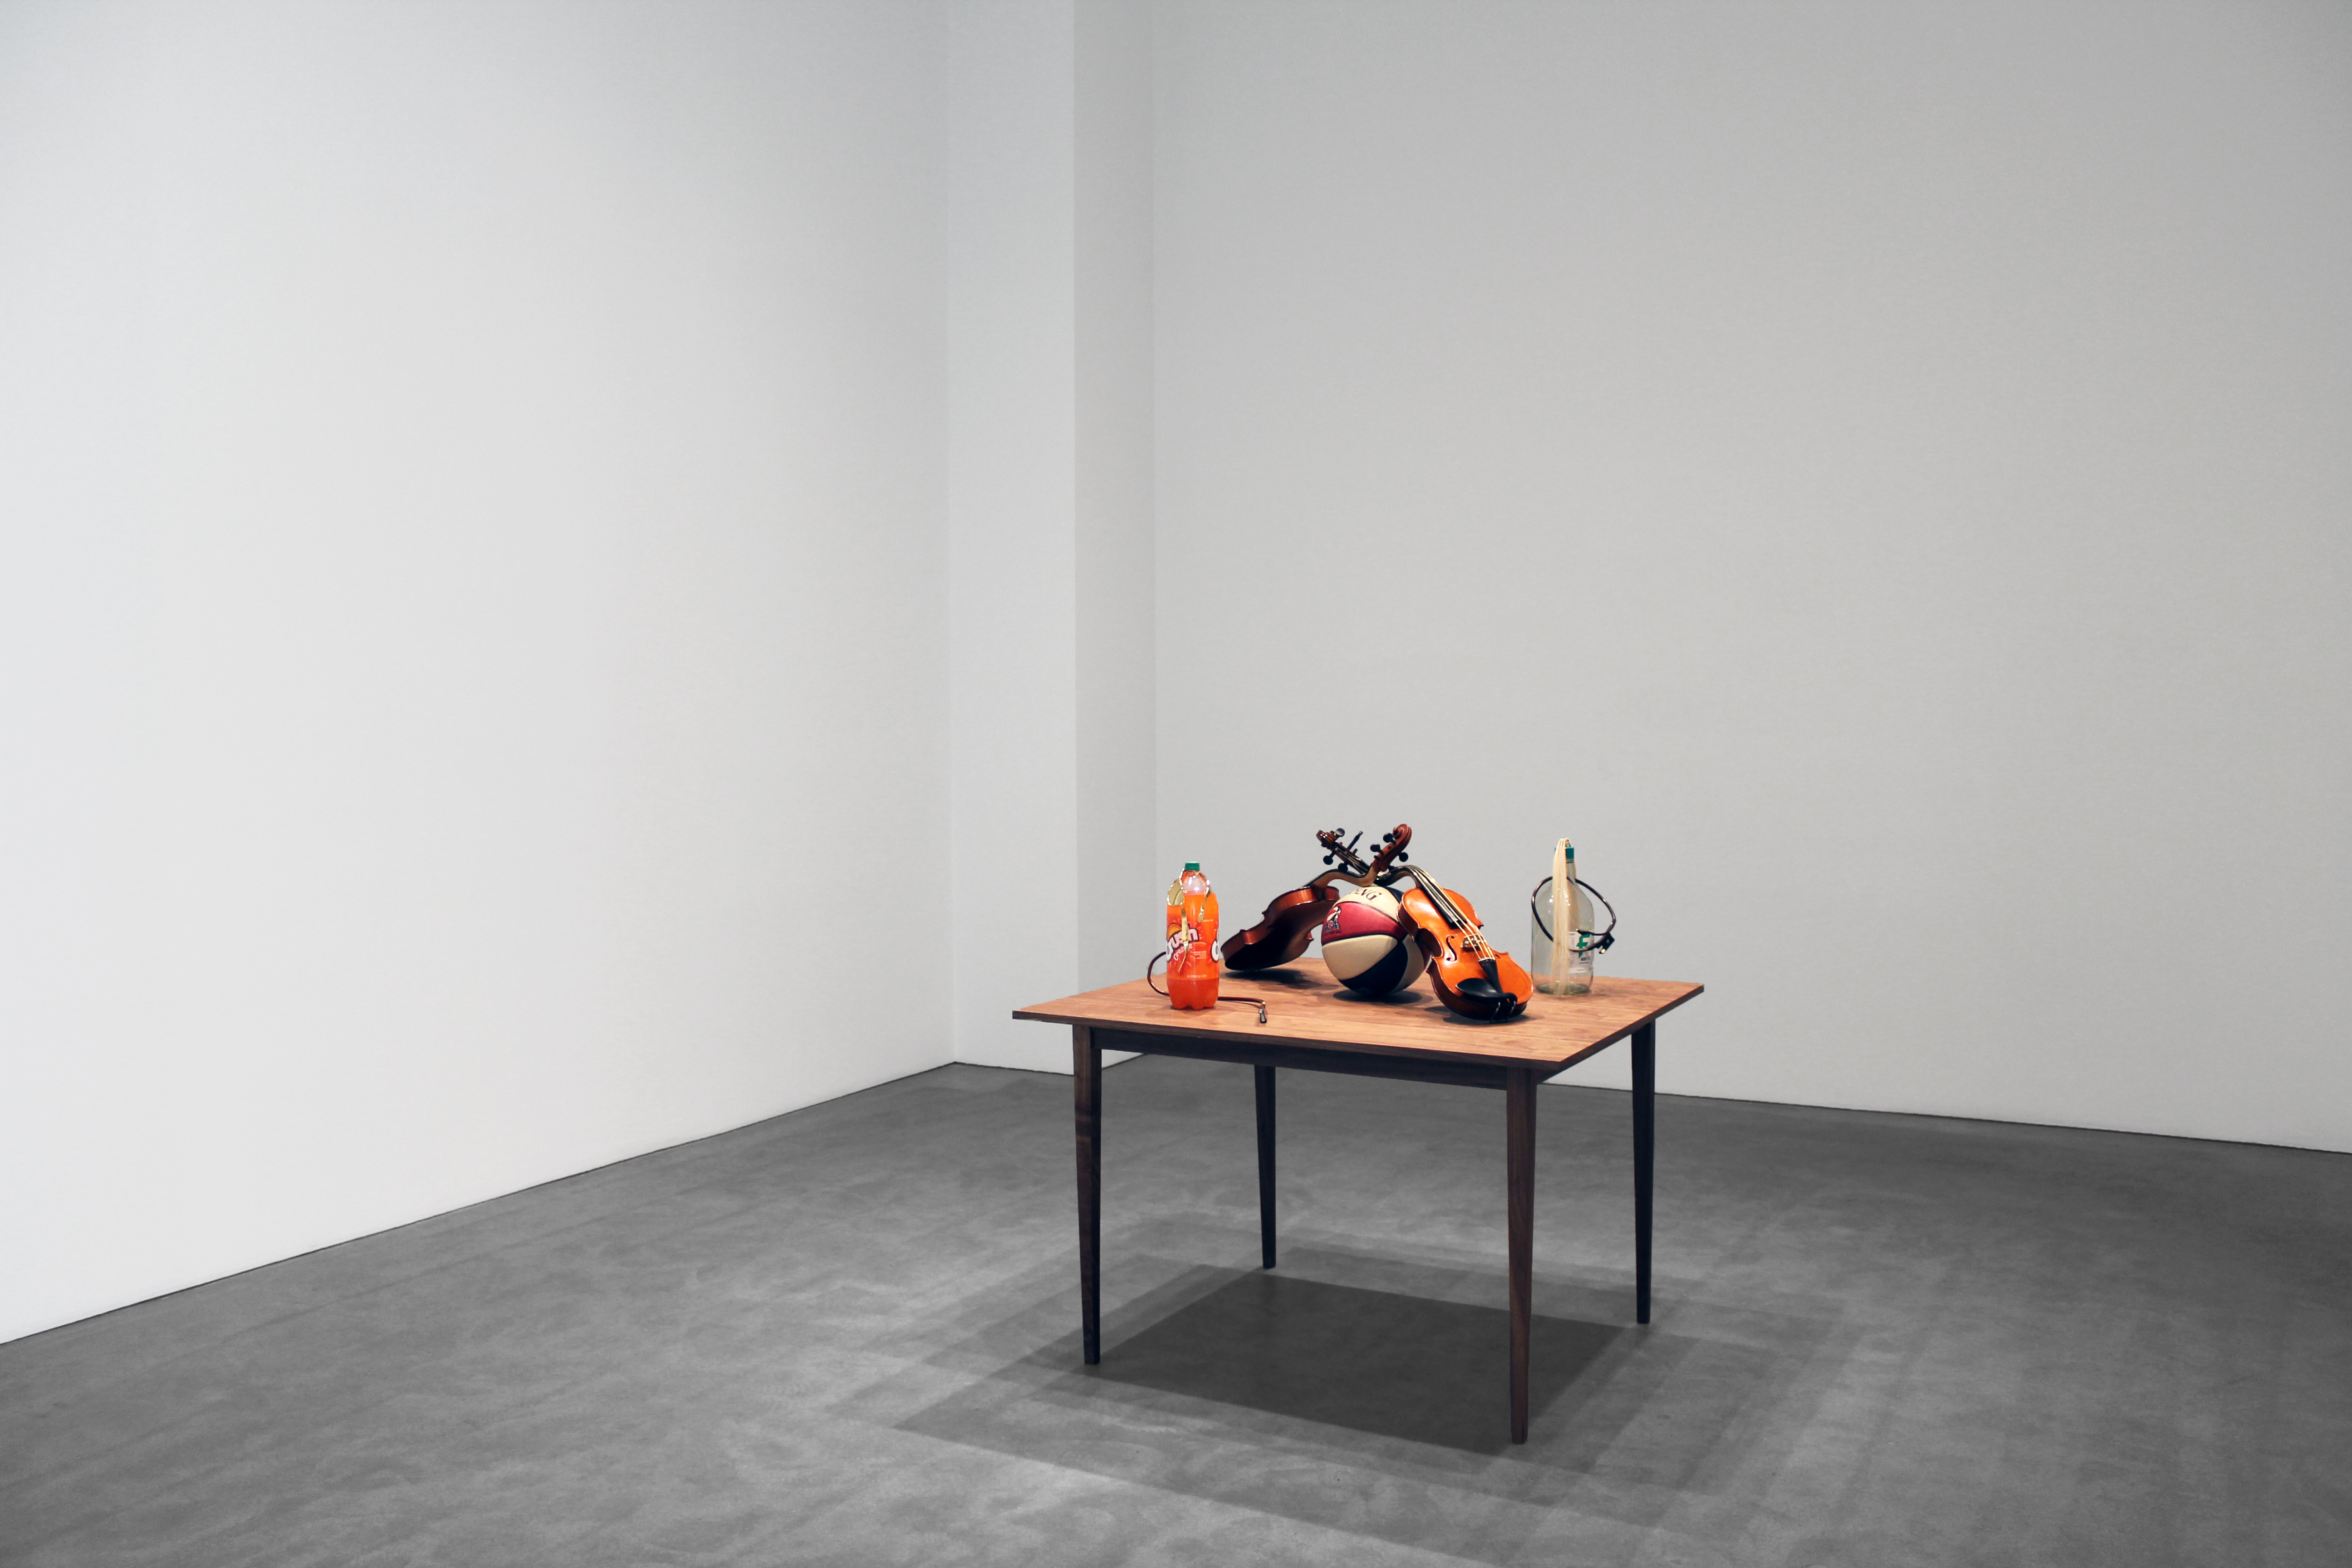 Untitled (Table Sculpture #3)